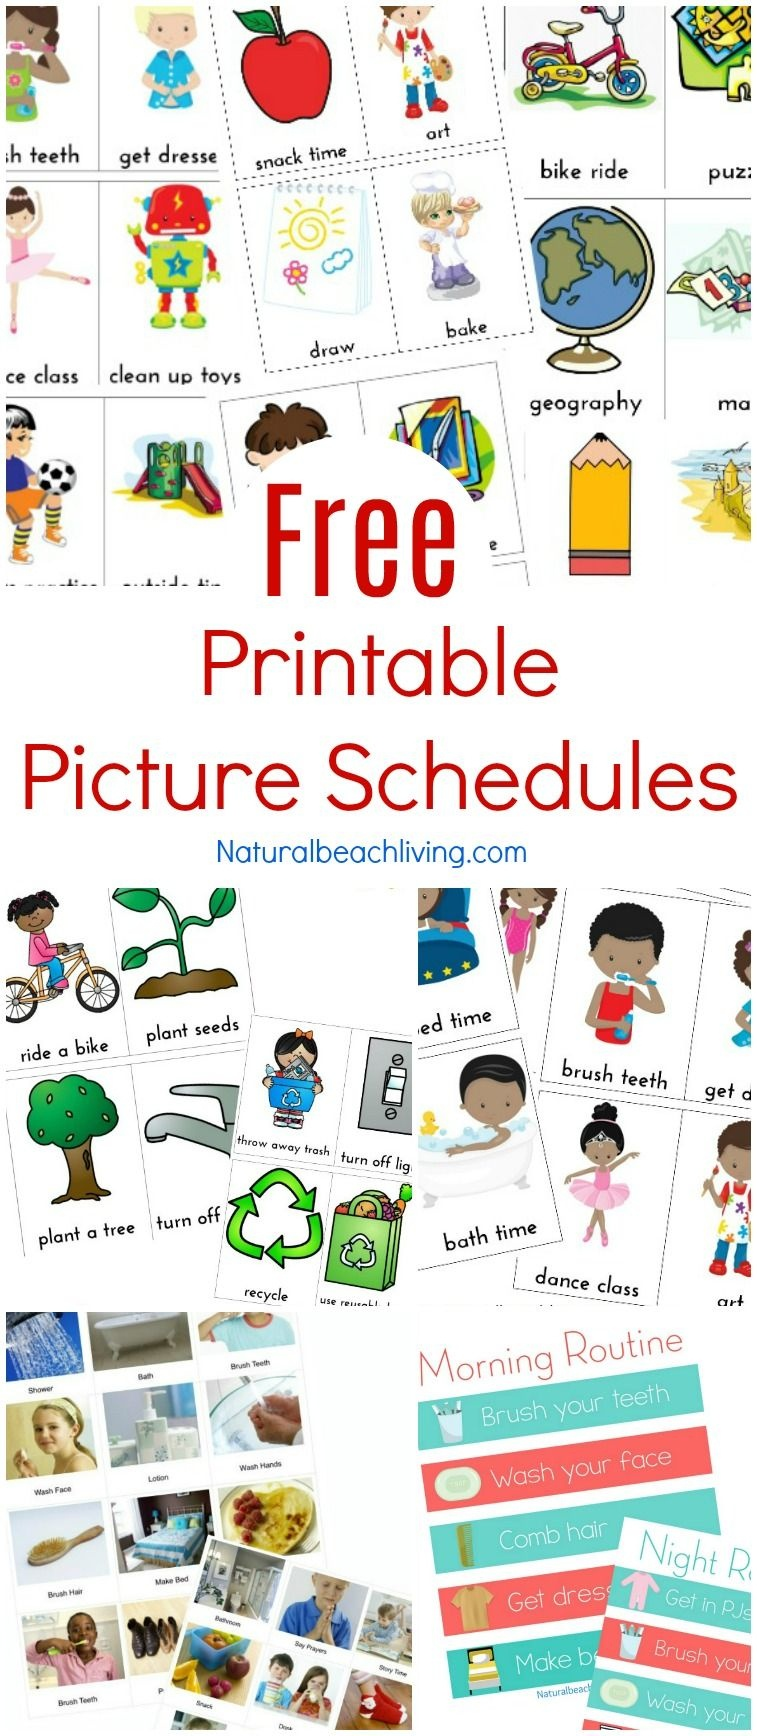 Free Printable Picture Schedule Cards - Visual Schedule Printables - Free Printable Schedule Cards